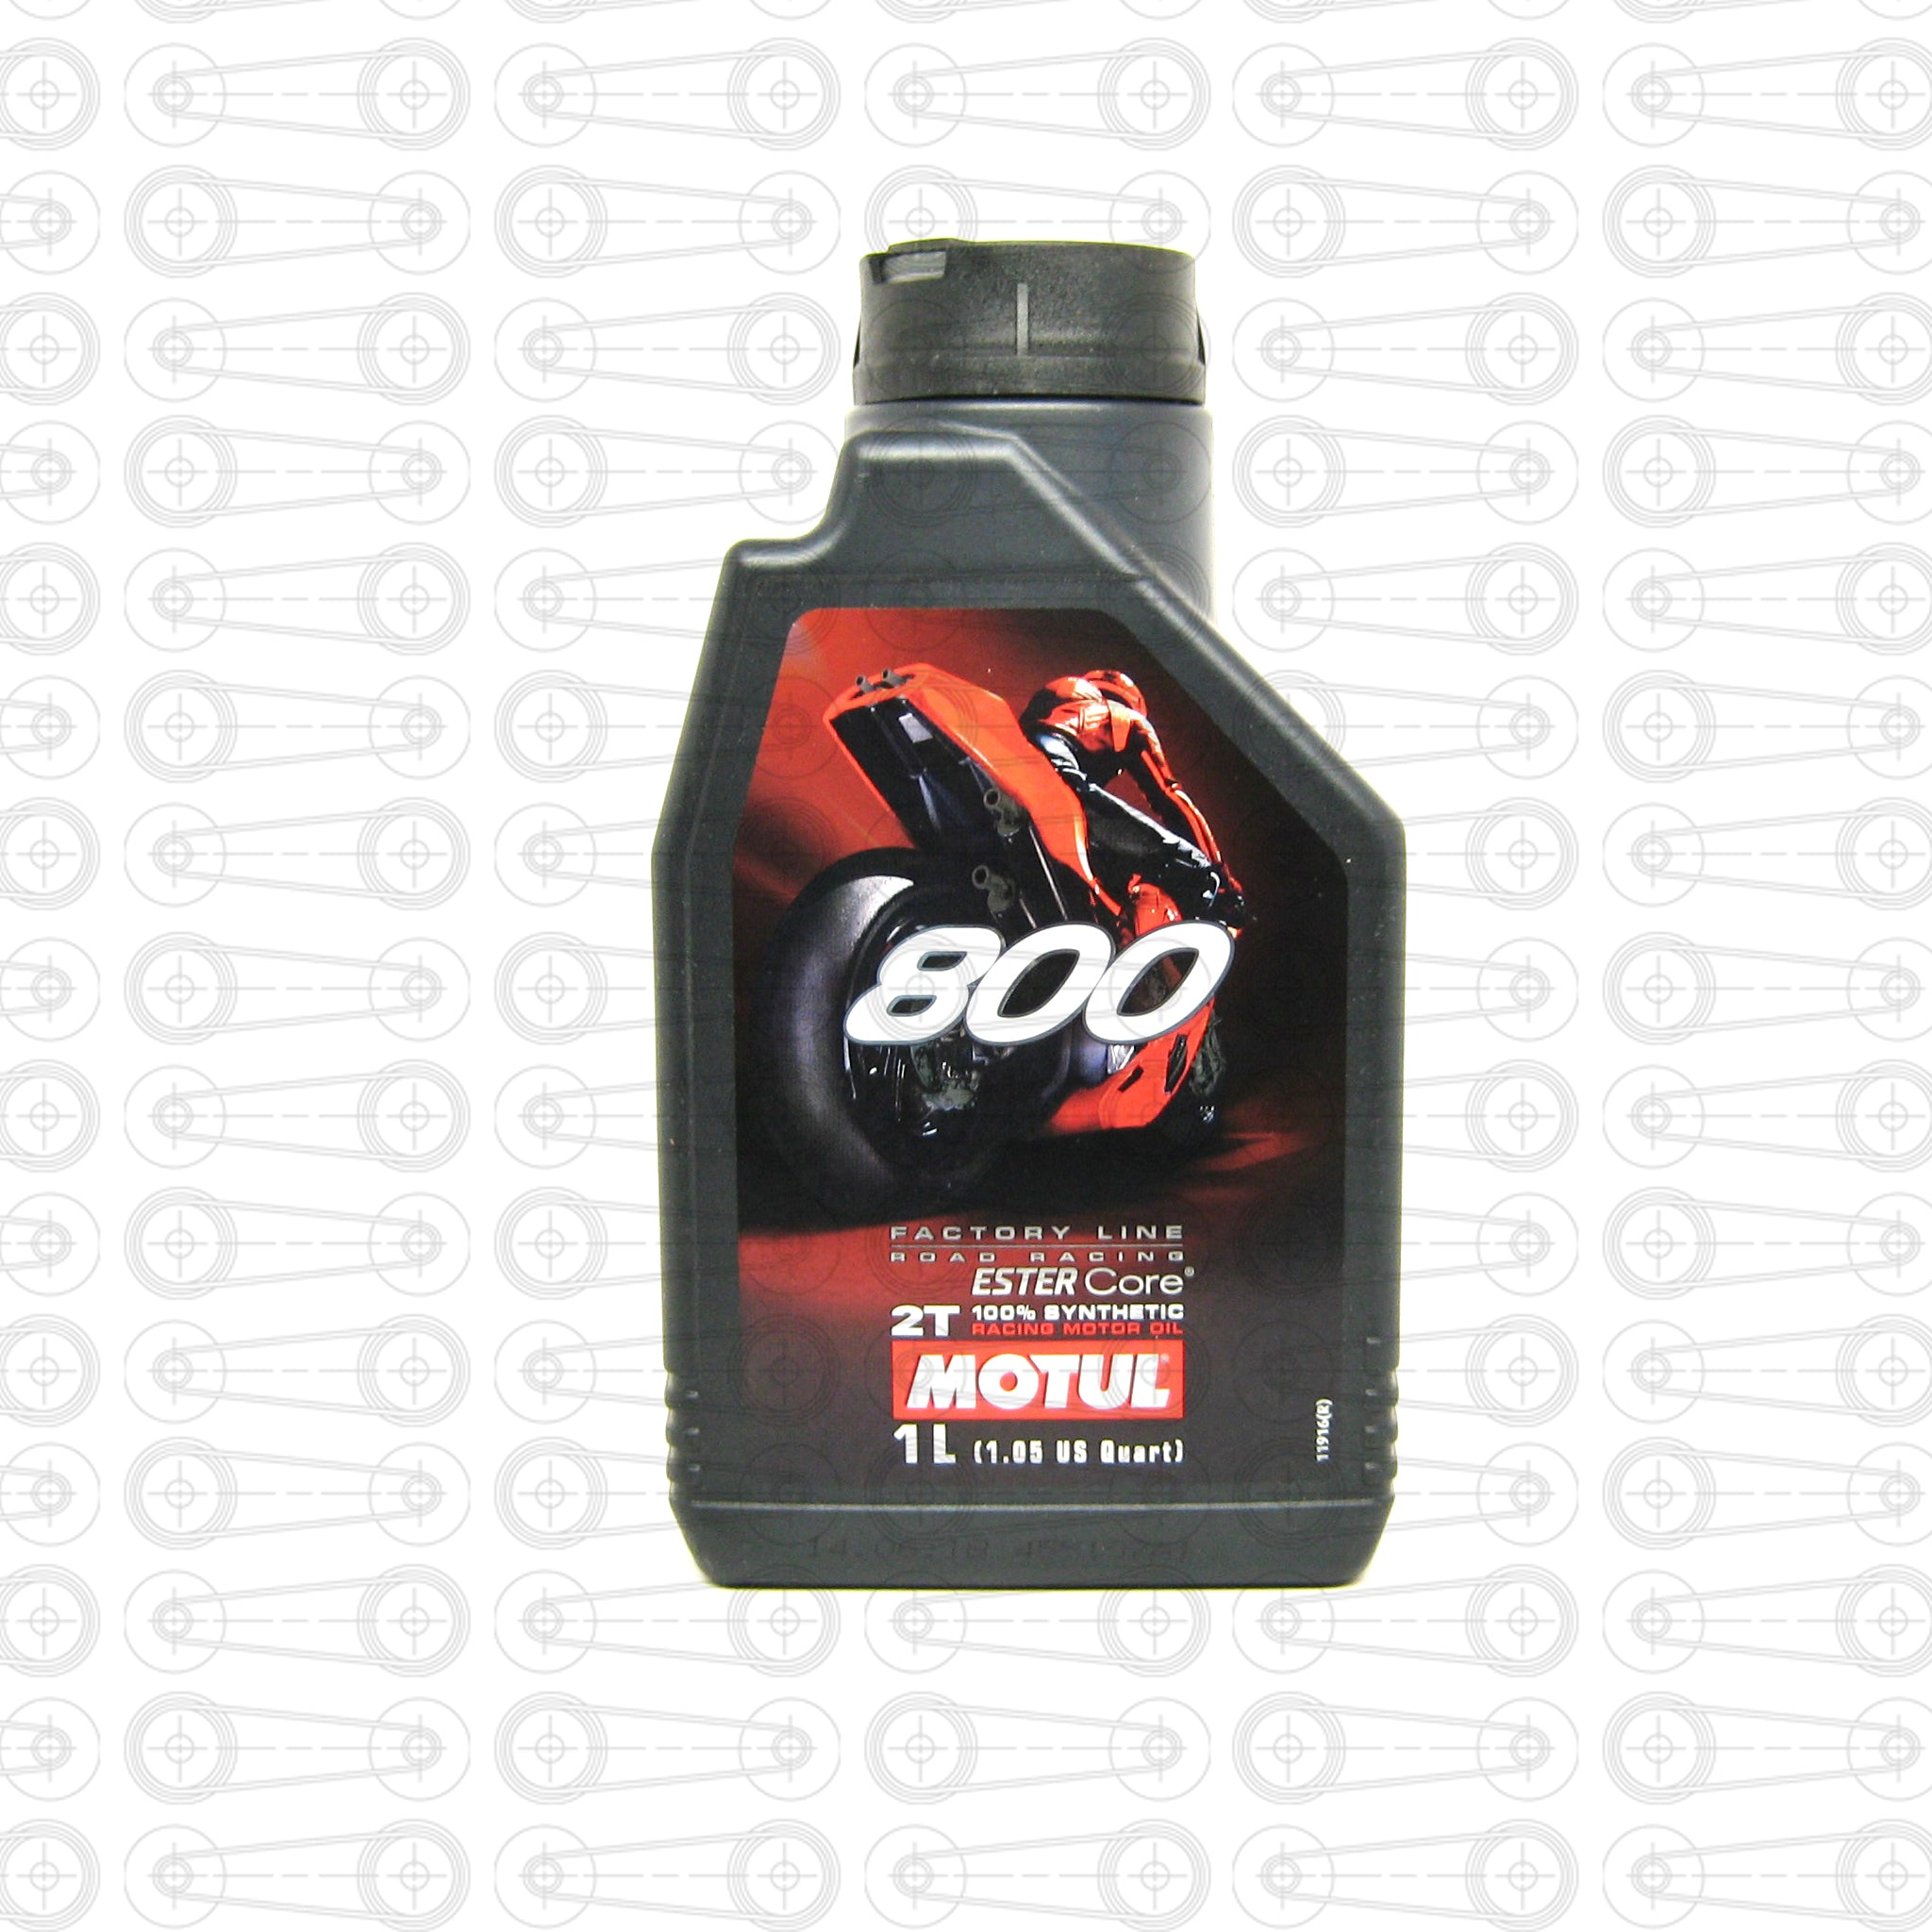 Motul - 800 2T Road Racing Synthetic Engine Oil